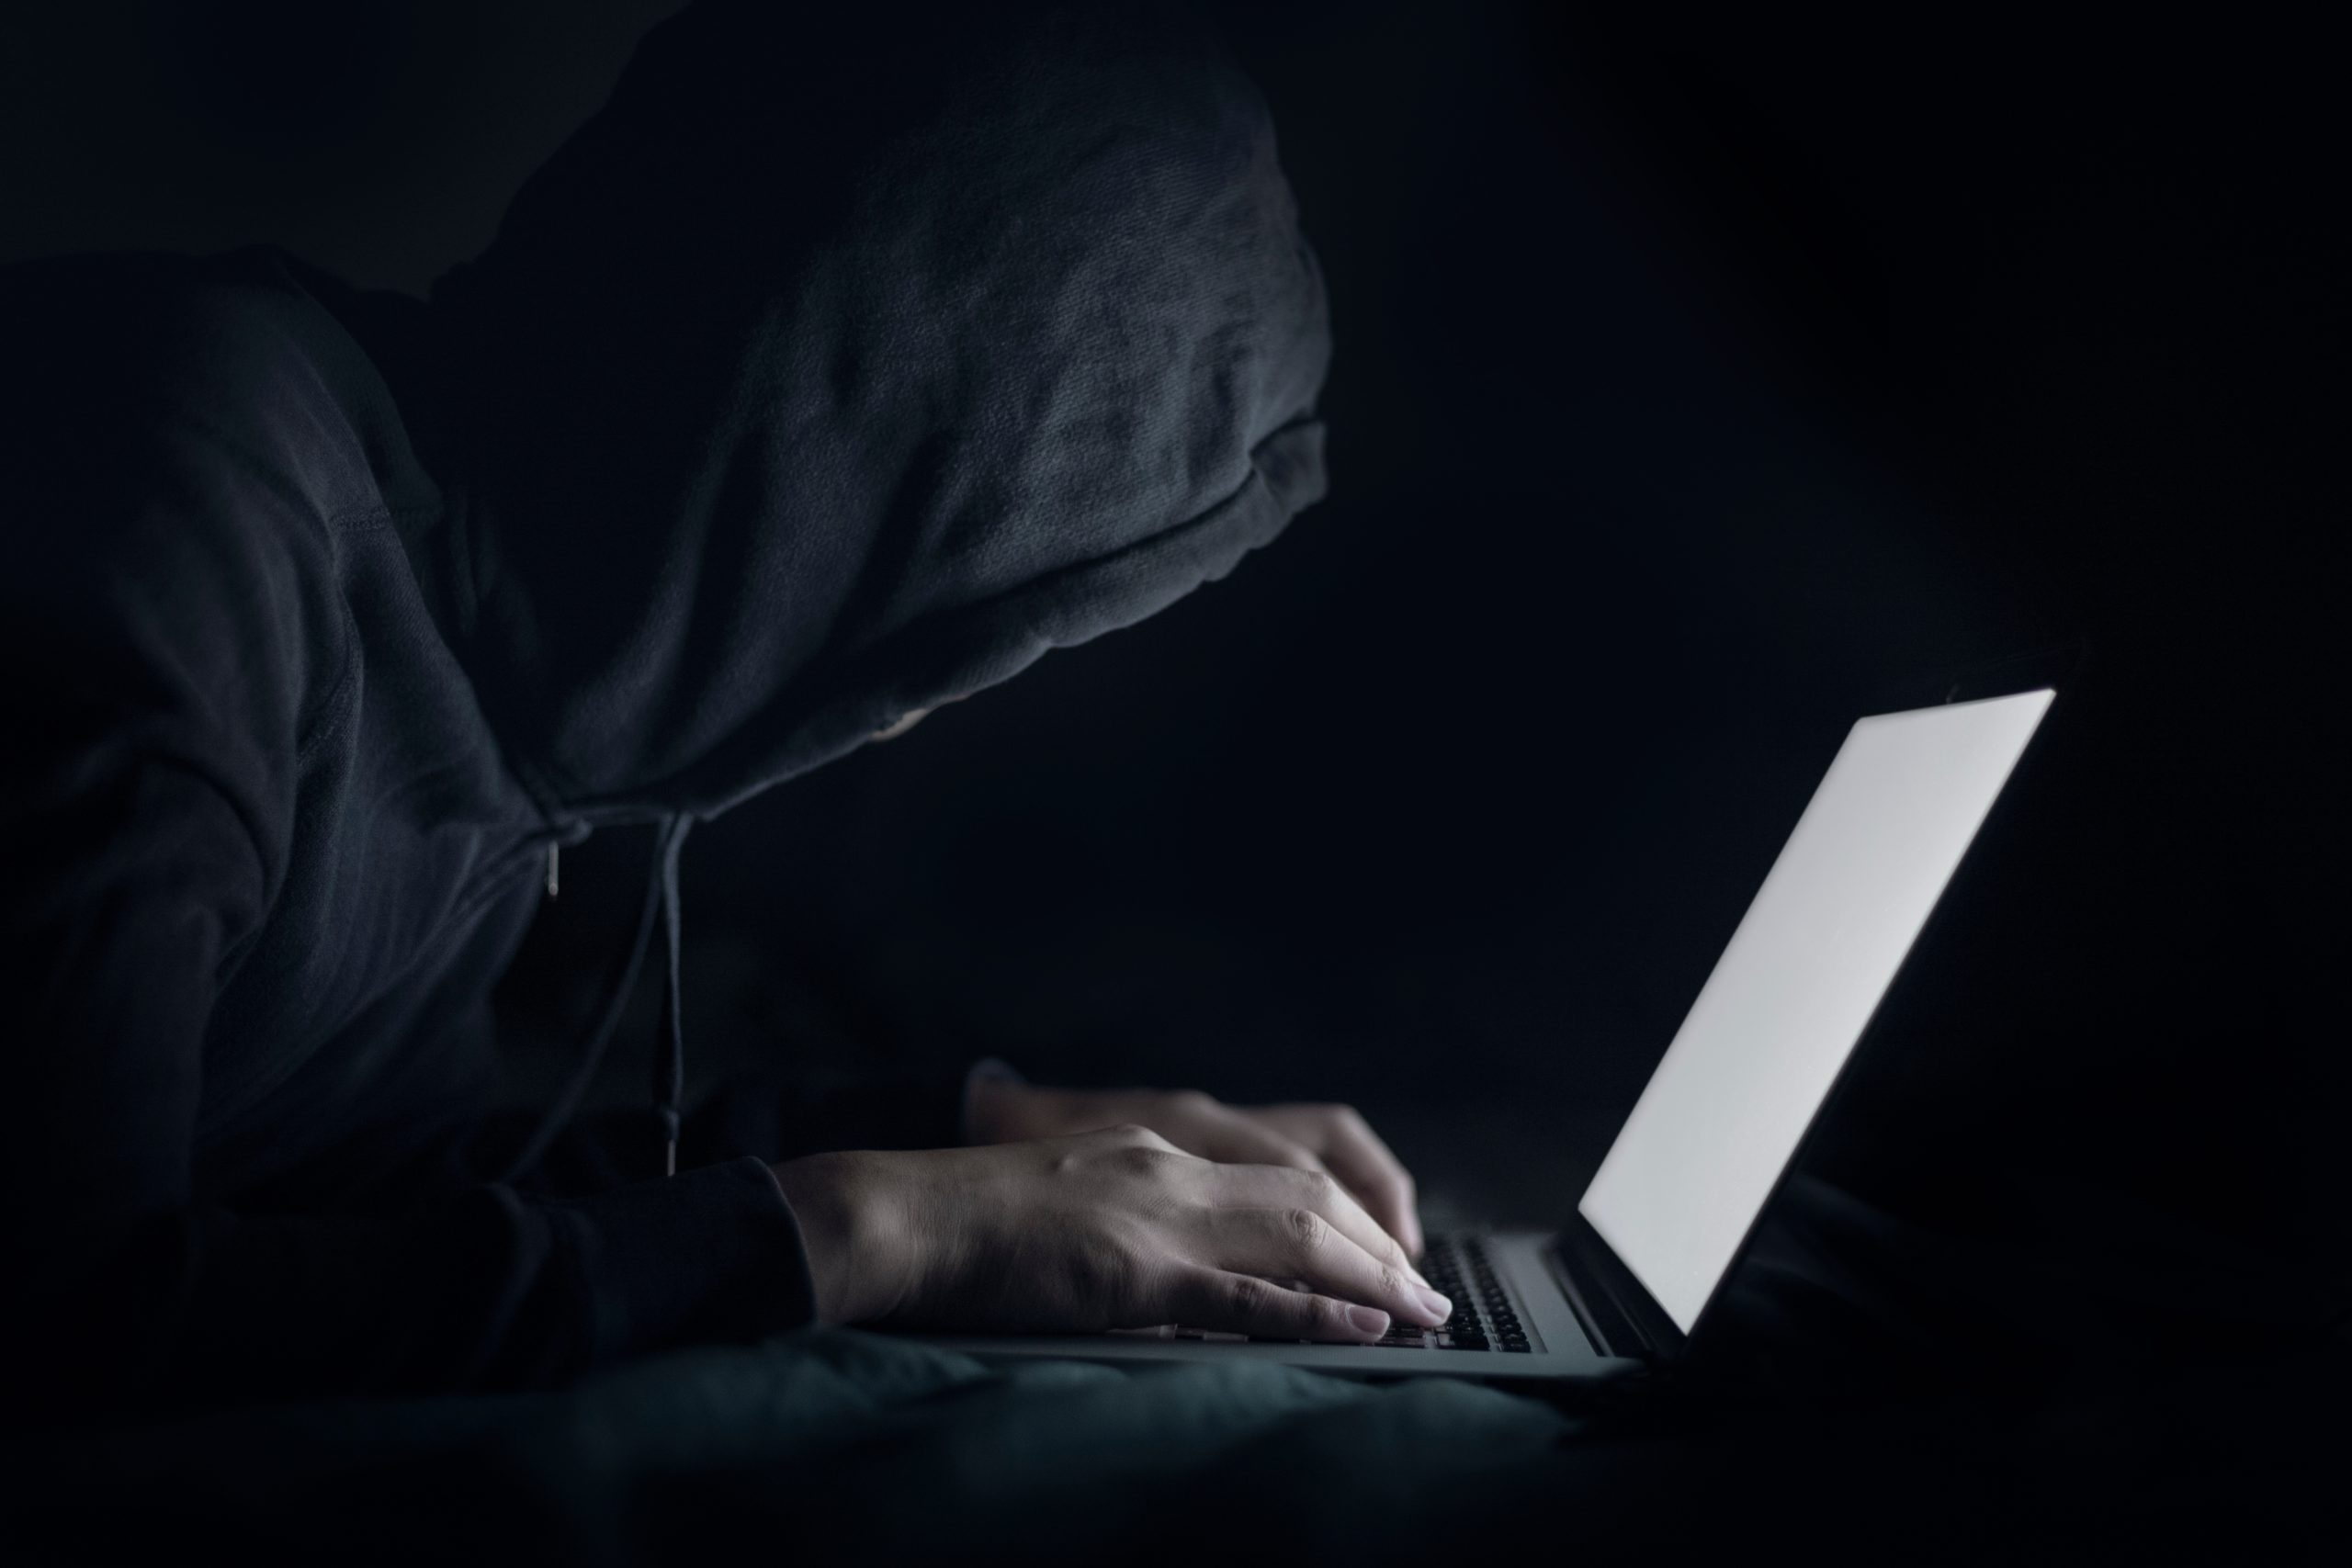 hackers-are-using-his-laptop-to-hacking-system-try-2MTYQTH-scaled